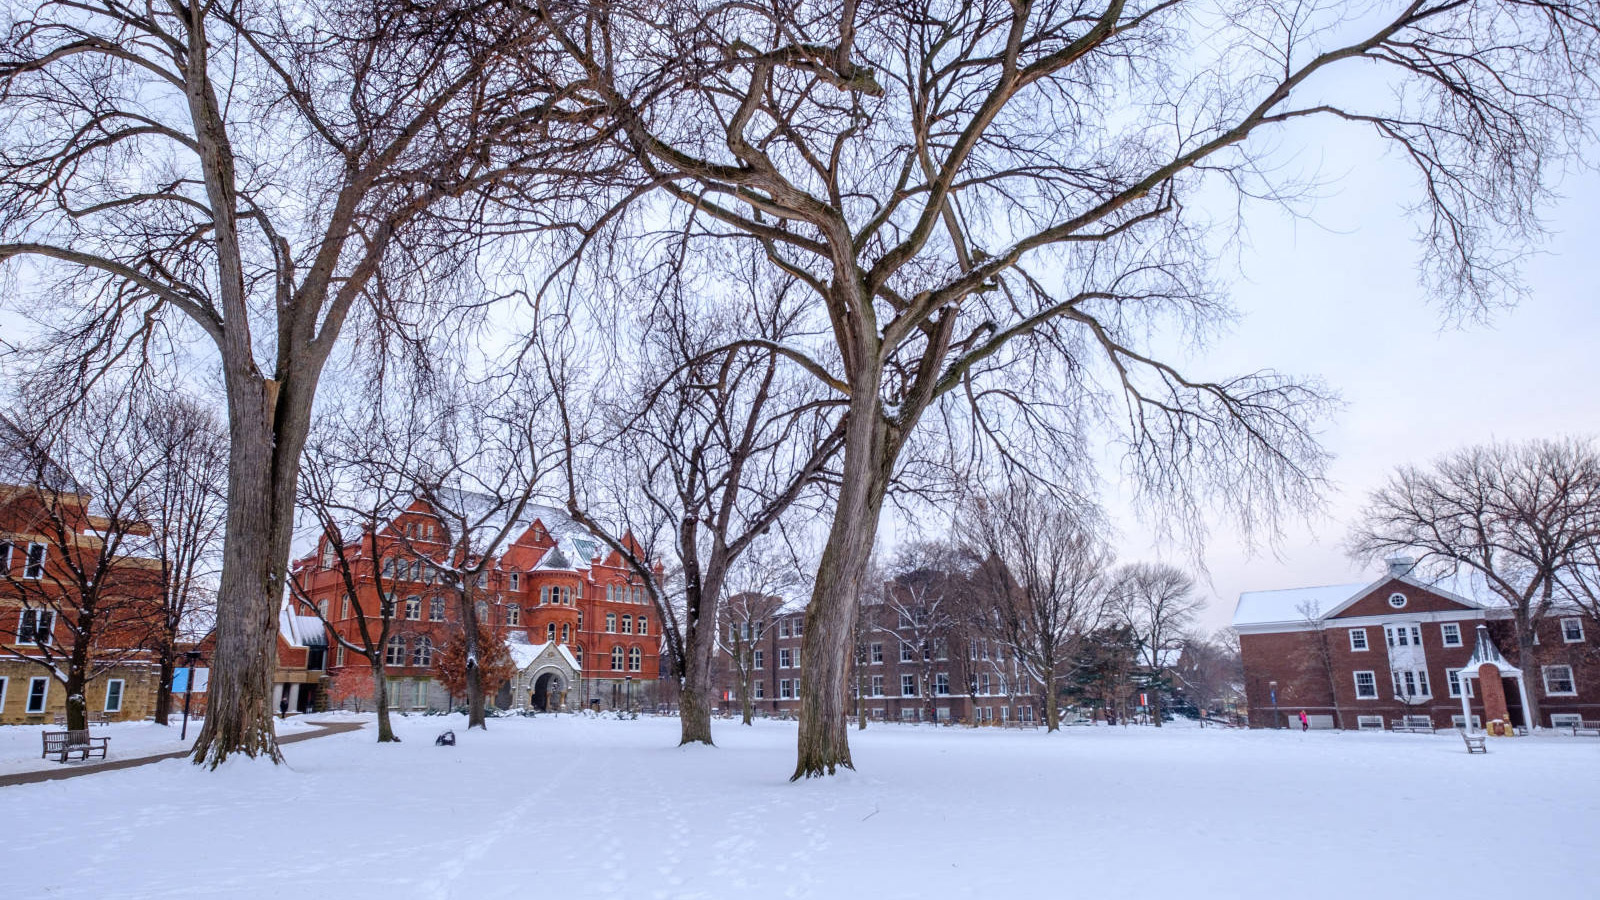 Macalester's Great Lawn covered in snow.